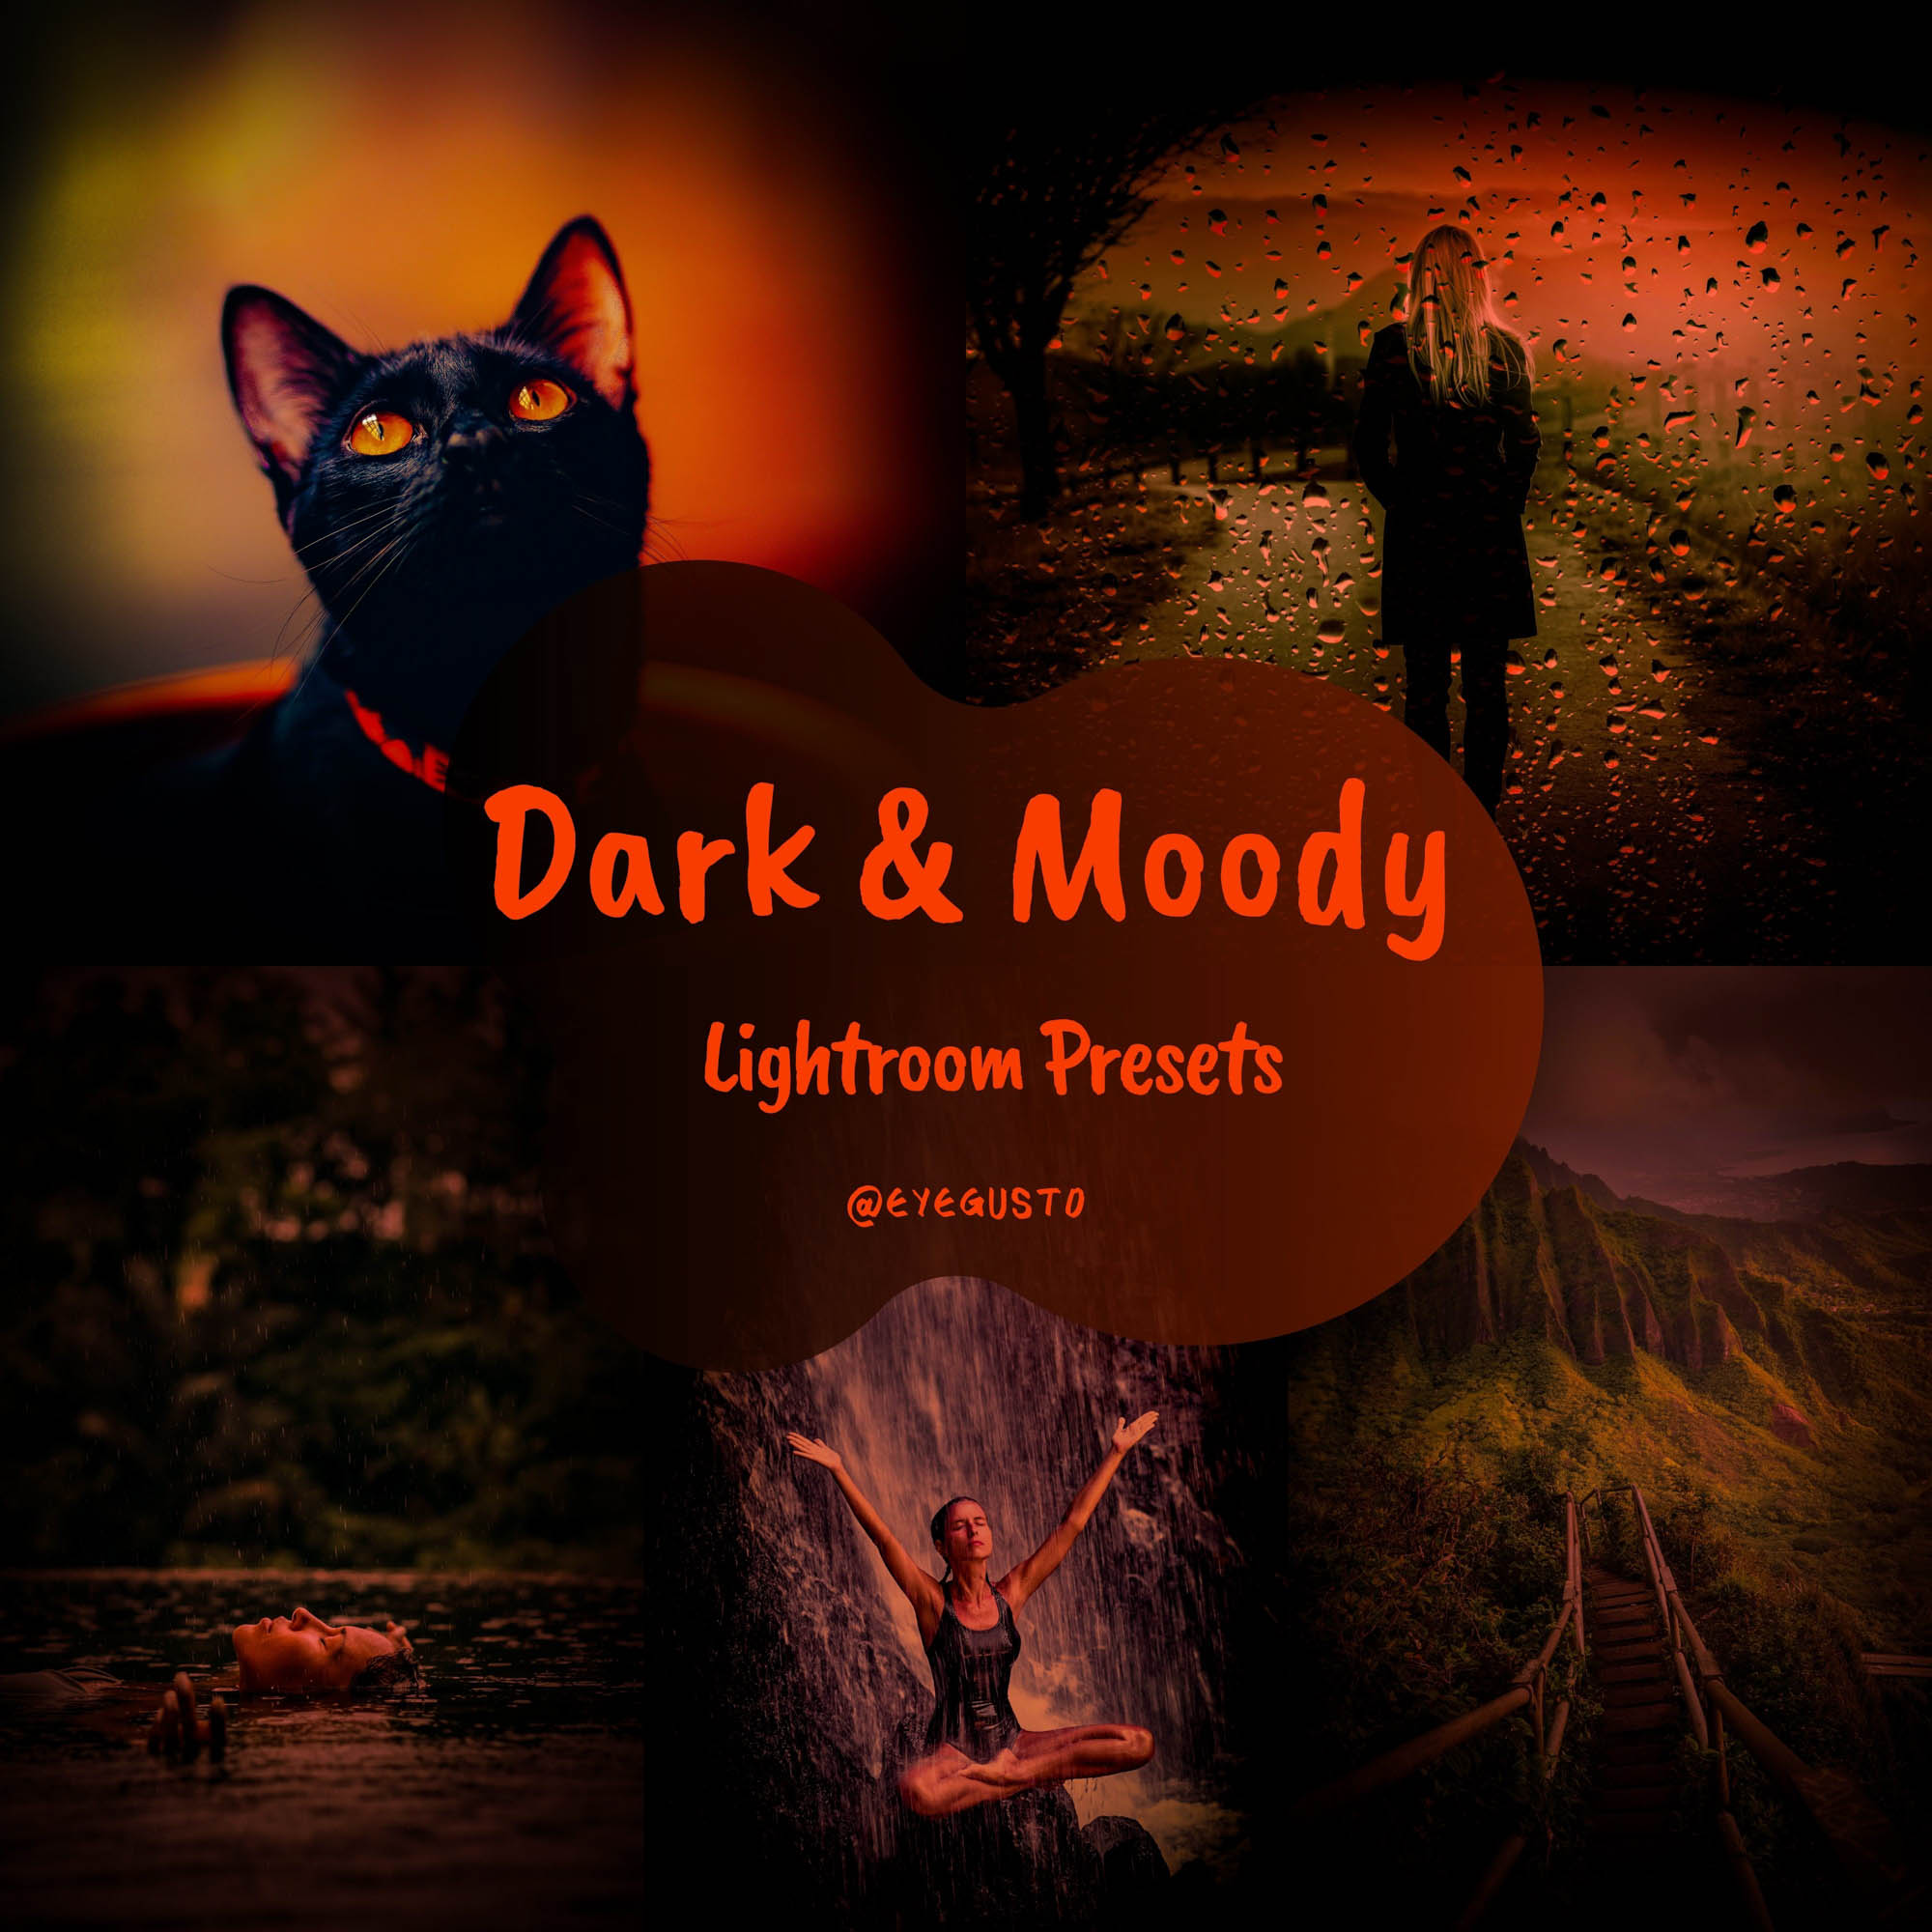 Dark and Moody Presets for Lightroom and Instagram